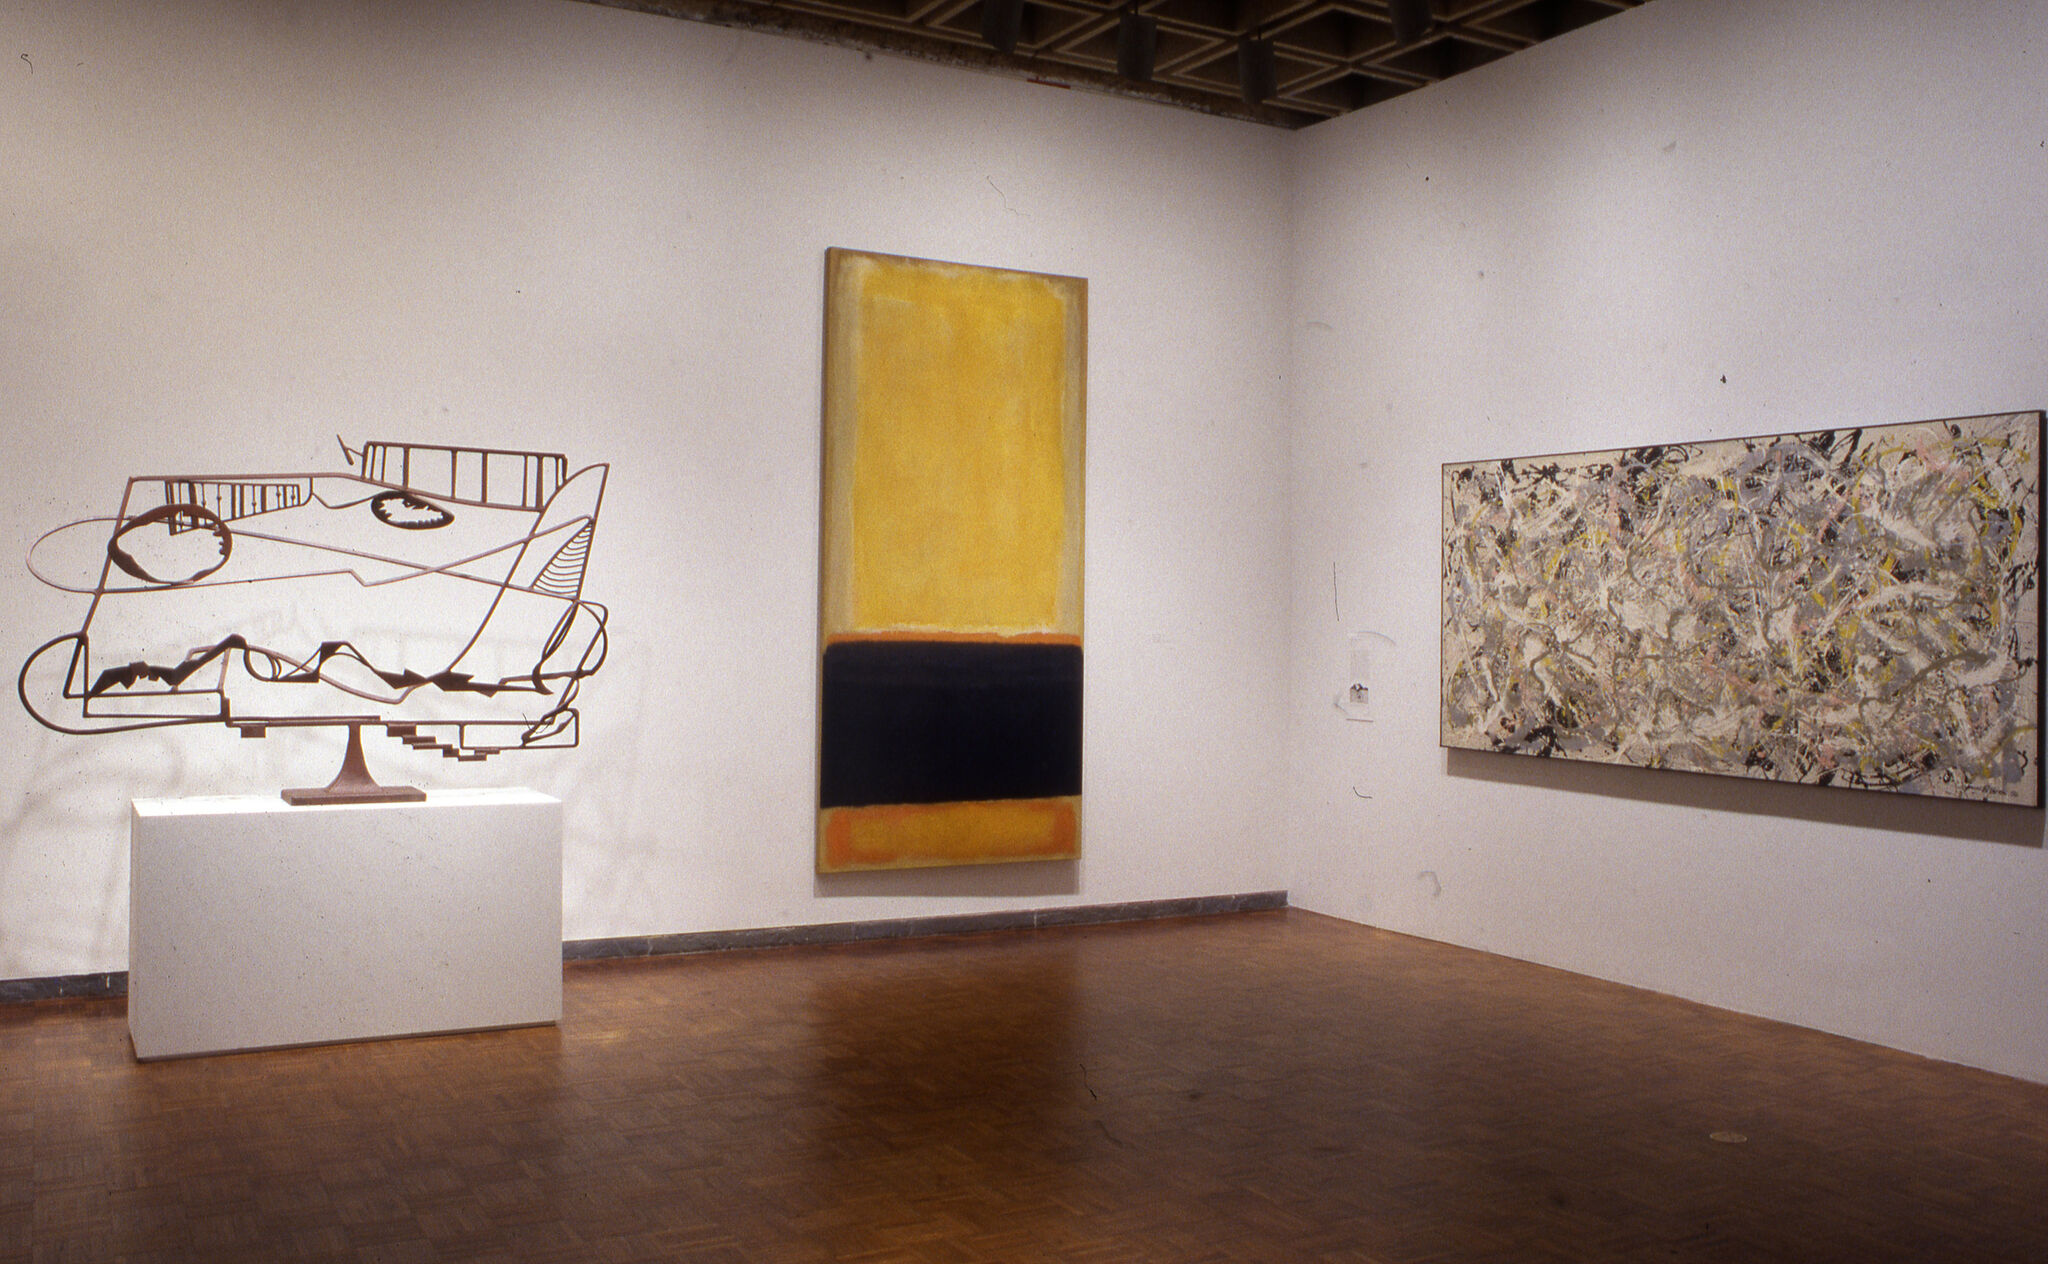 Two paintings and a wire sculpture displayed in a gallery.